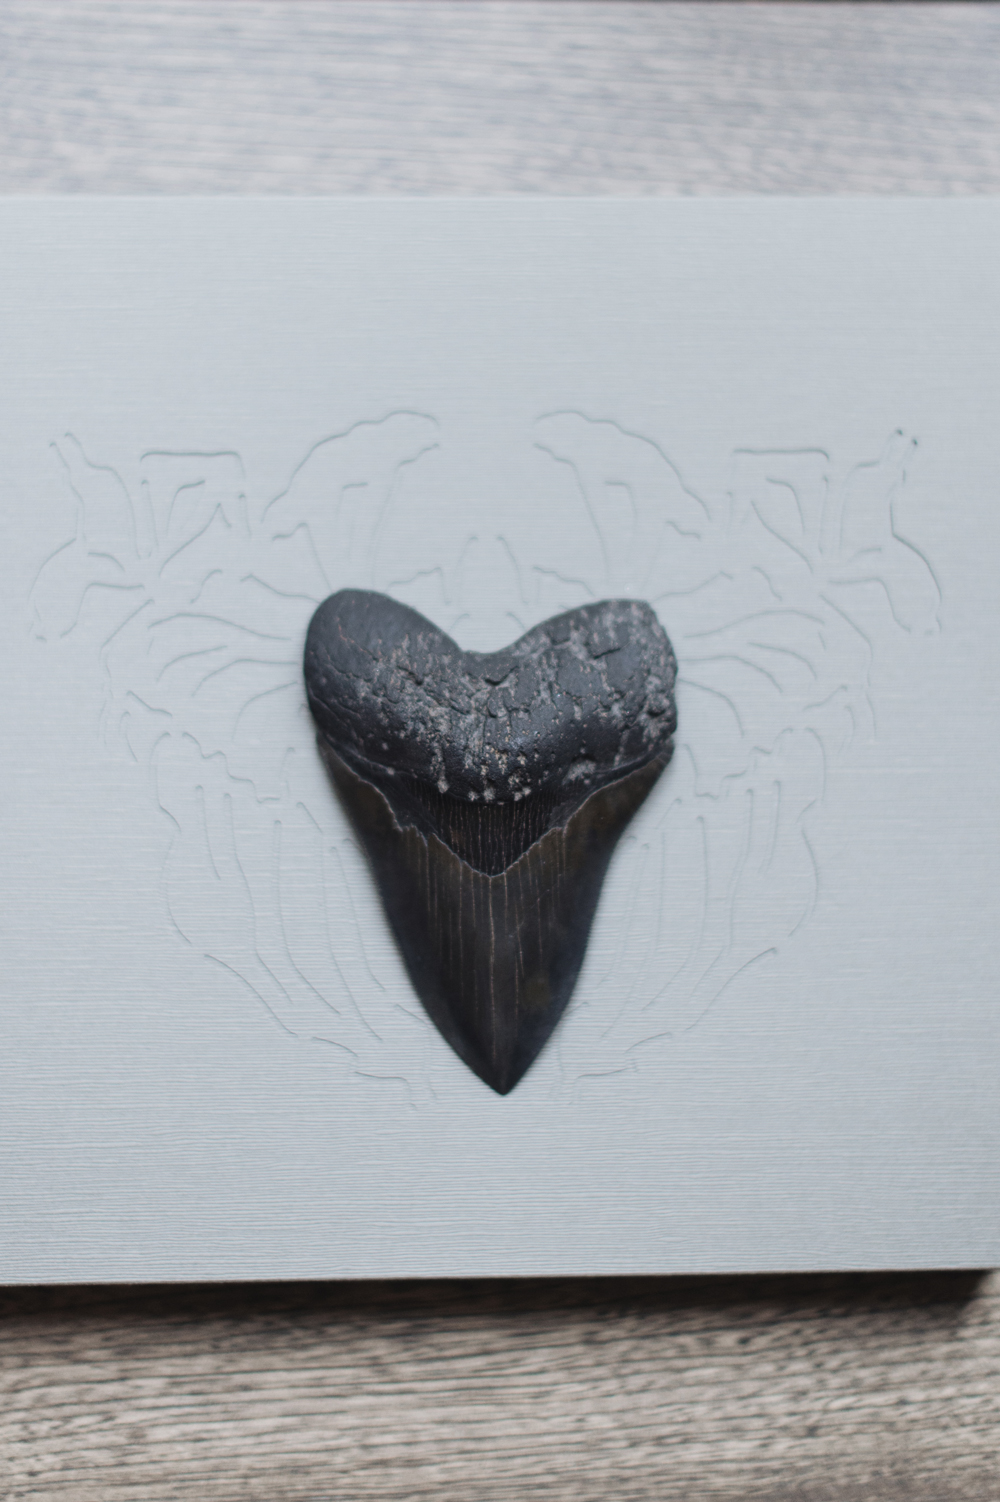 An inspirational heart shaped objet from Inna's personal collection